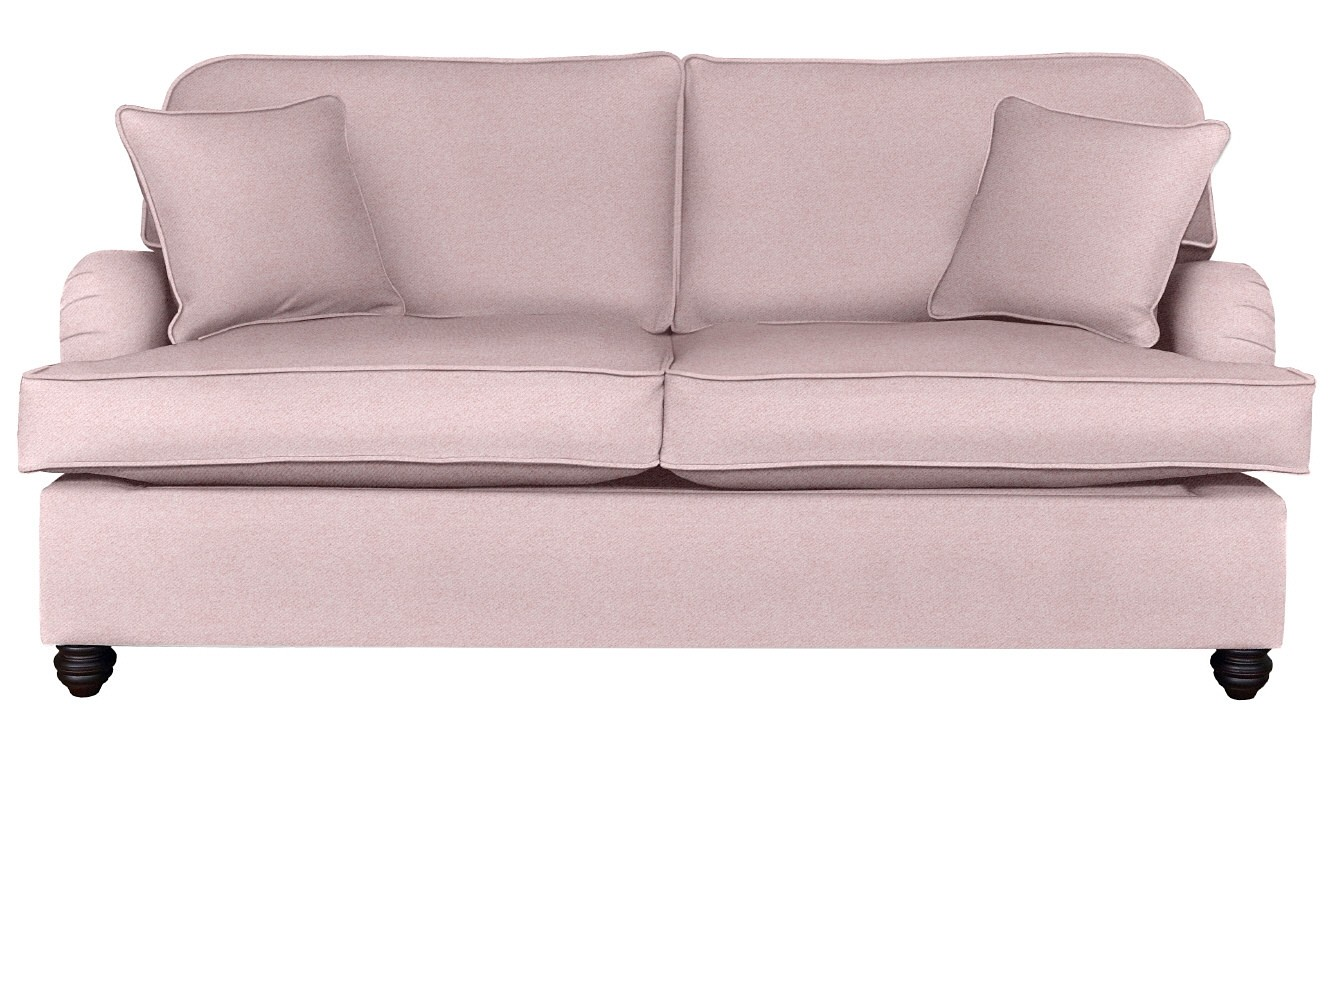 The Downton 4 Seater Sofa Bed